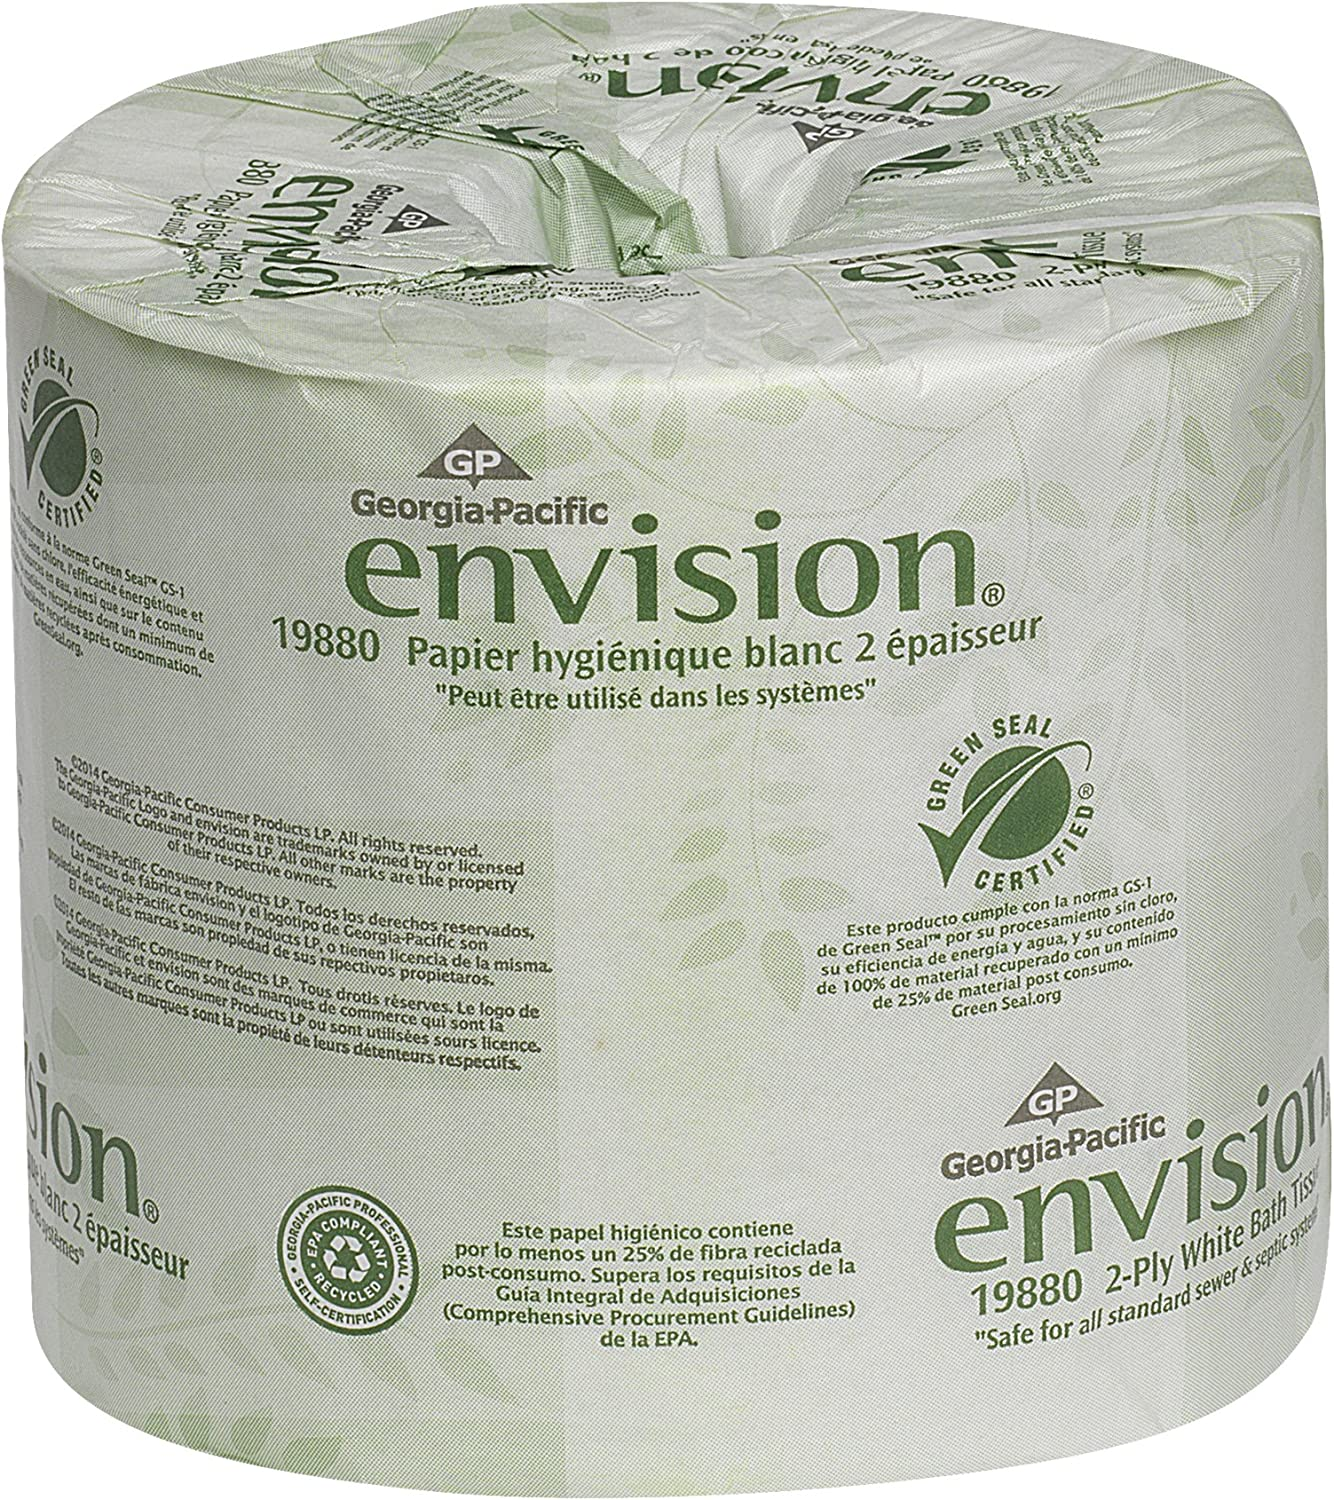 Envision 2-Ply Embossed Toilet Paper is one of the most eco friendly toilet paper around. It uses recycled paper fibers to help lessen it's environmental impact